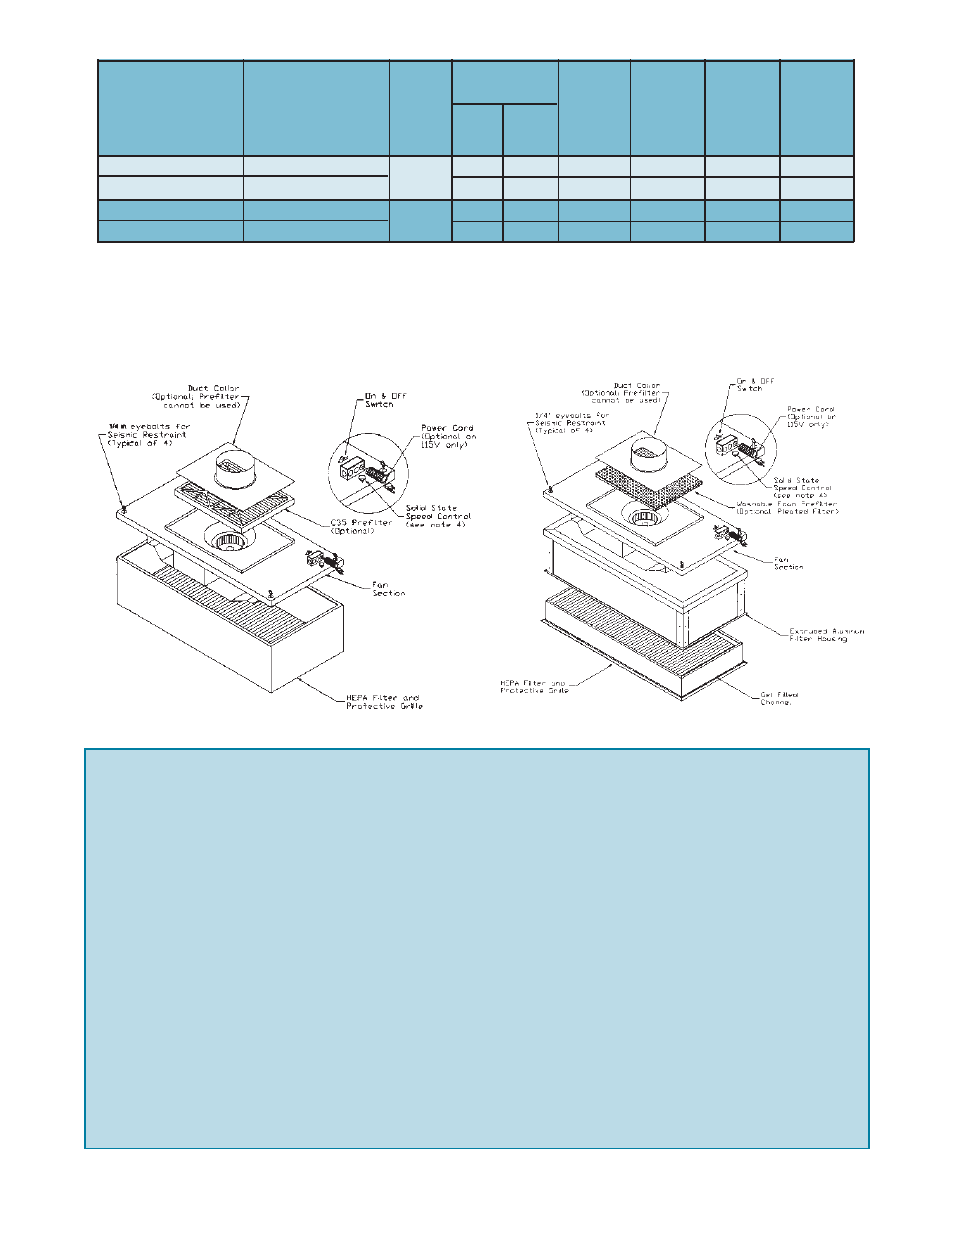 The filter and hvac store, Guide specifications | Honeywell 11255 ...